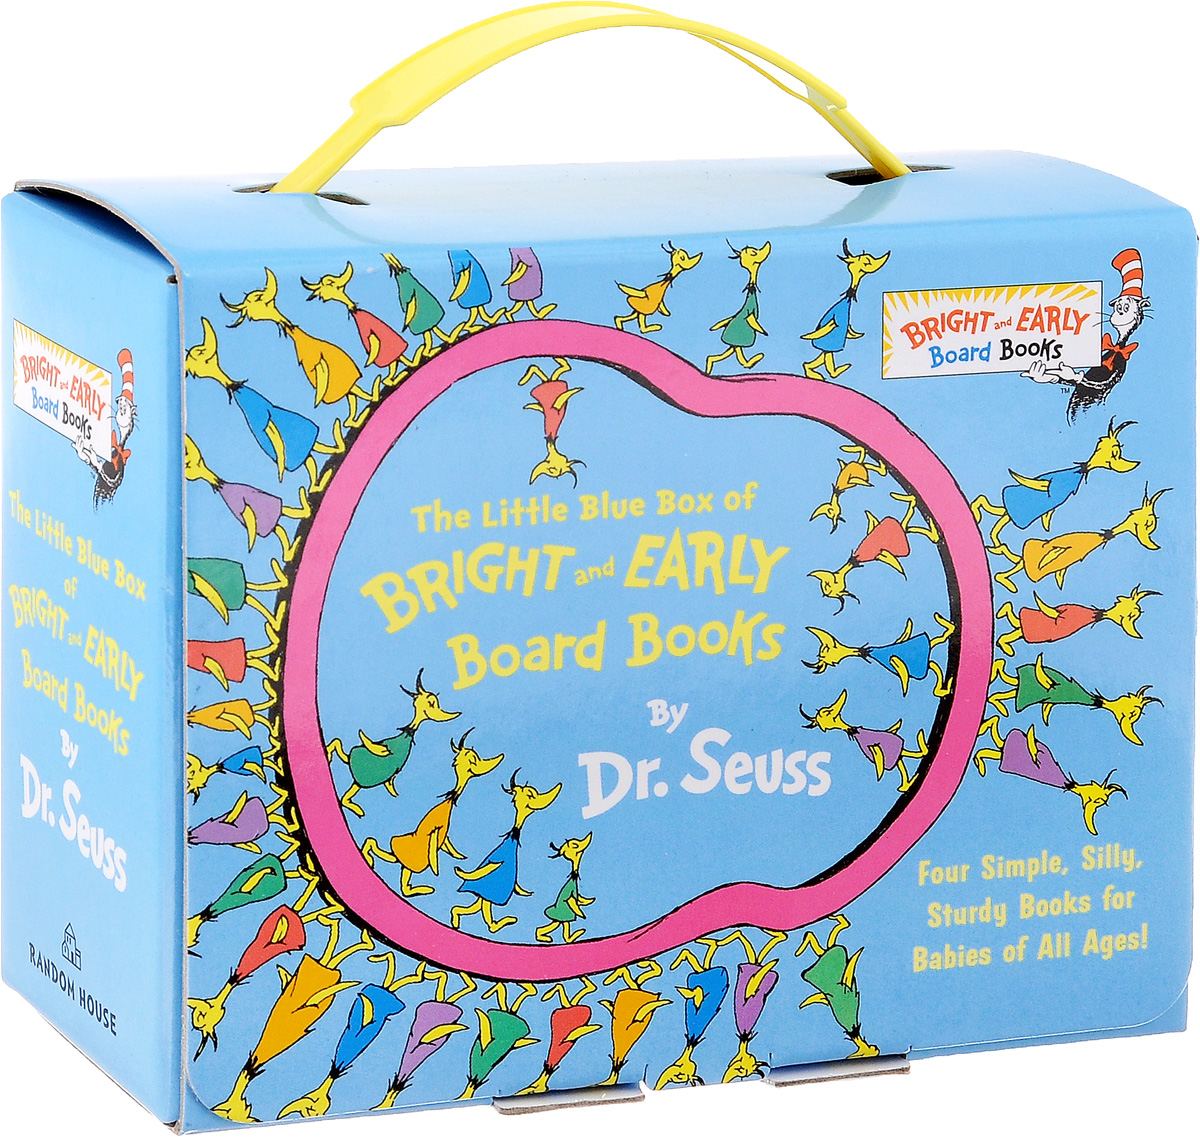 The Little Blue Box of Bright and Early: Board Books all the bright places